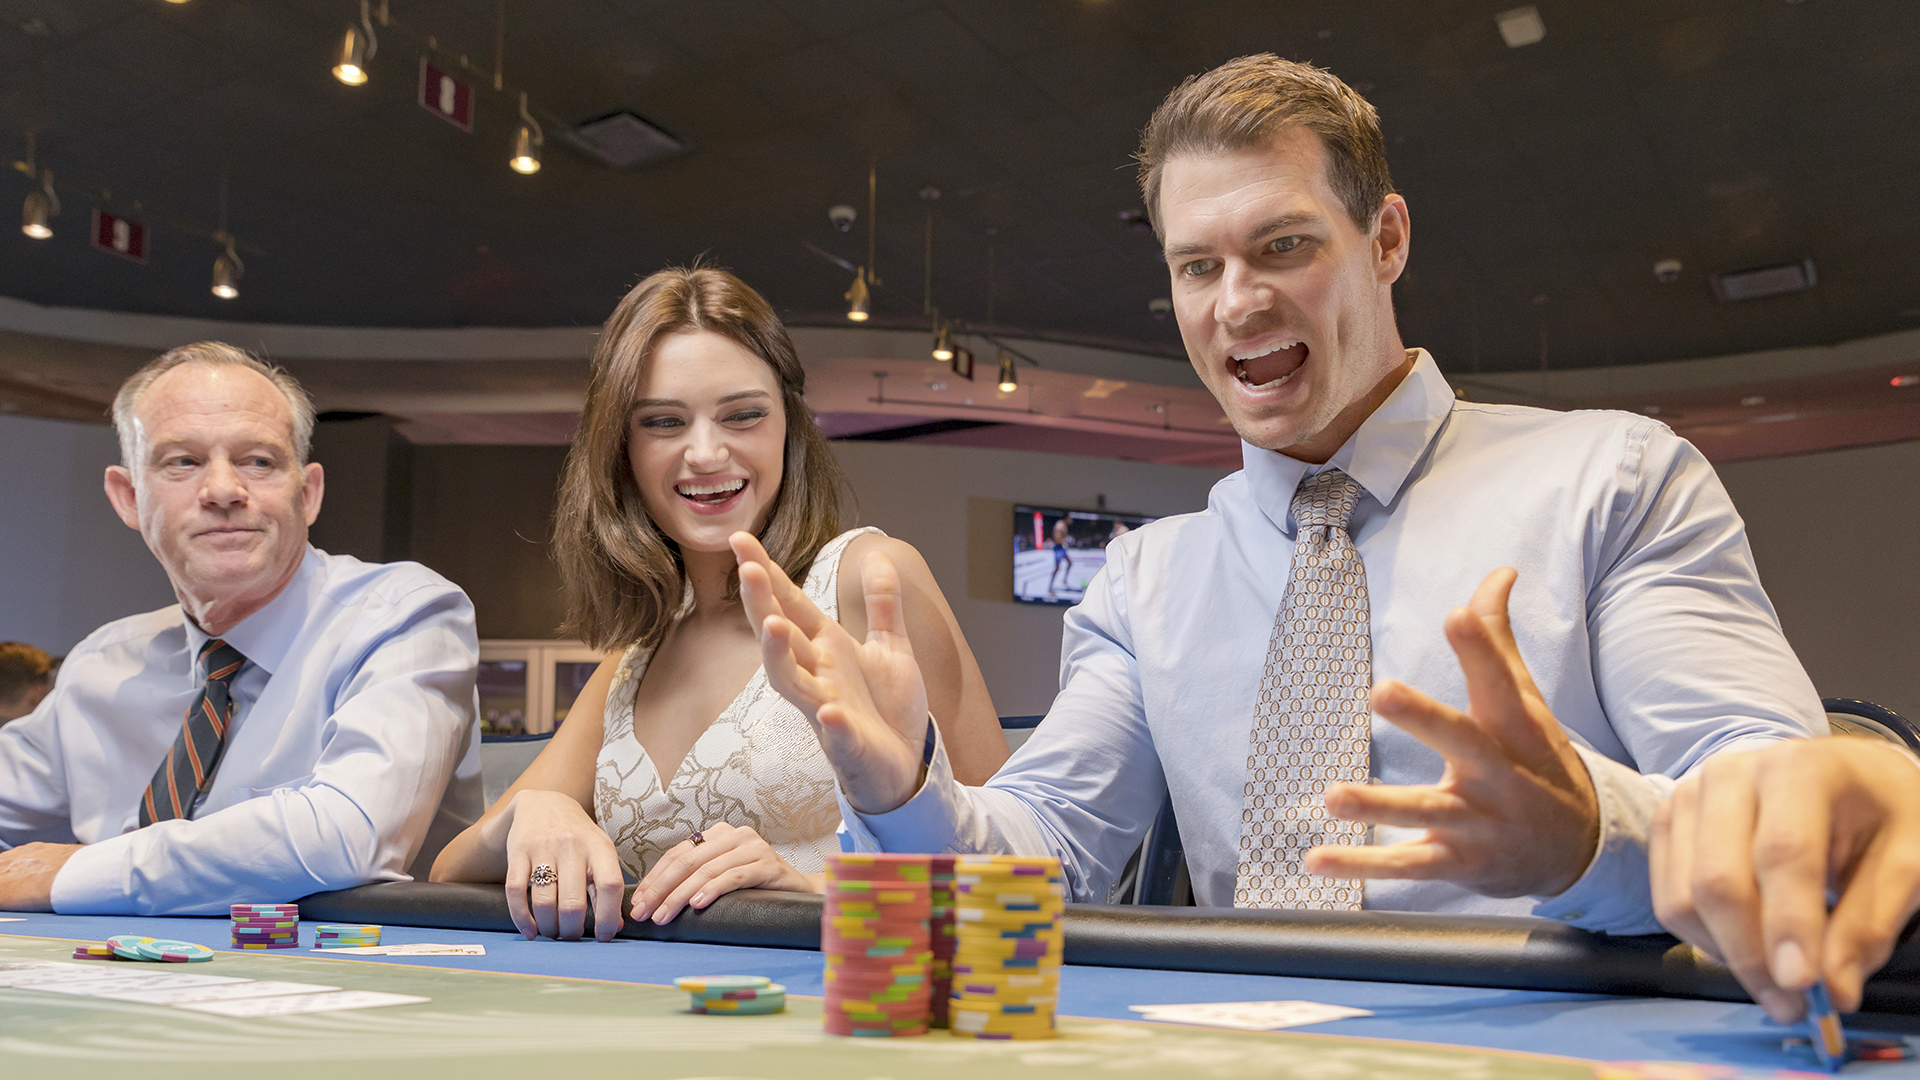 Raise the Stakes in the Poker Room